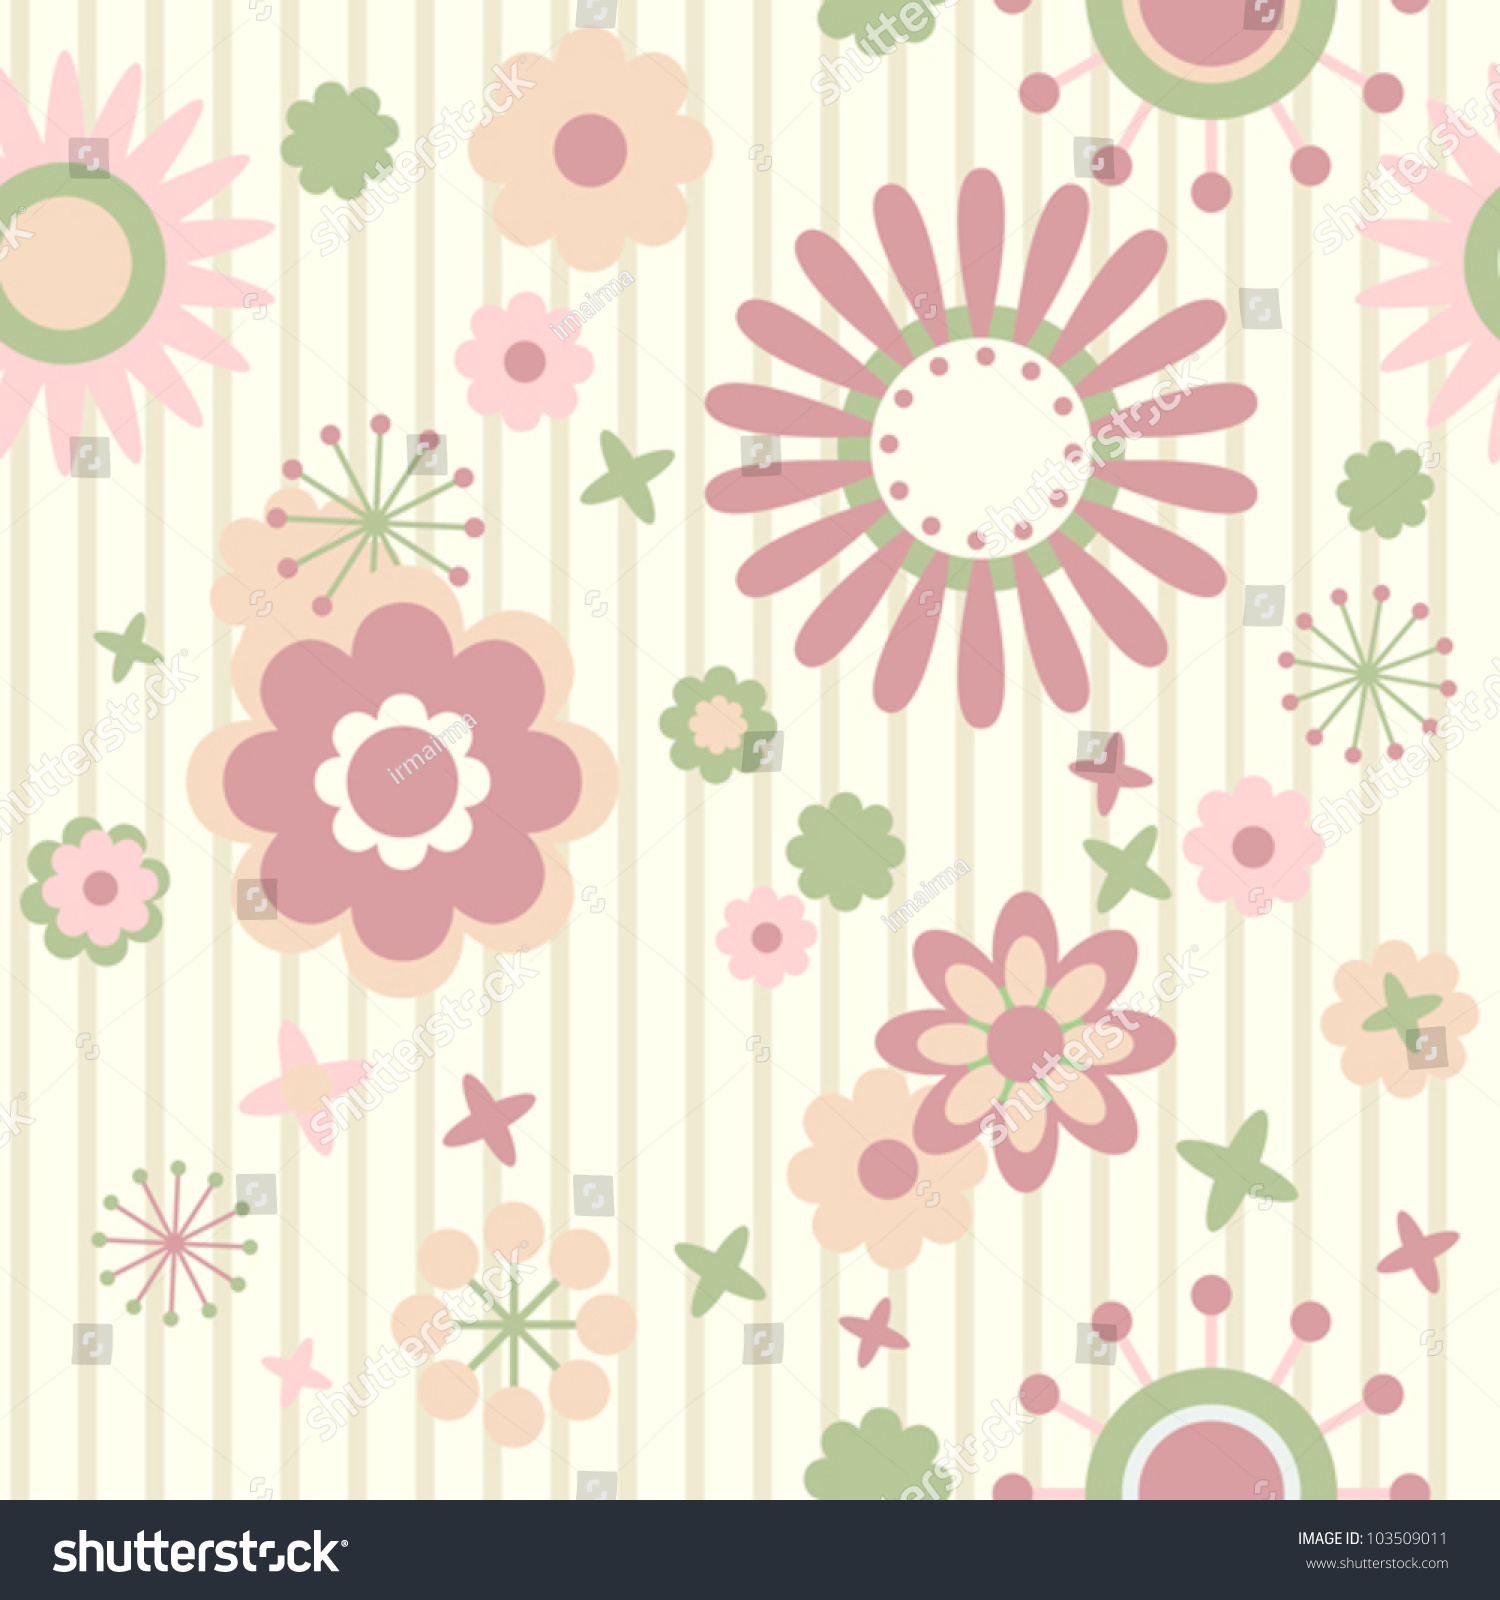 Striped Floral Wallpaper Stock Vector Royalty Free 103509011